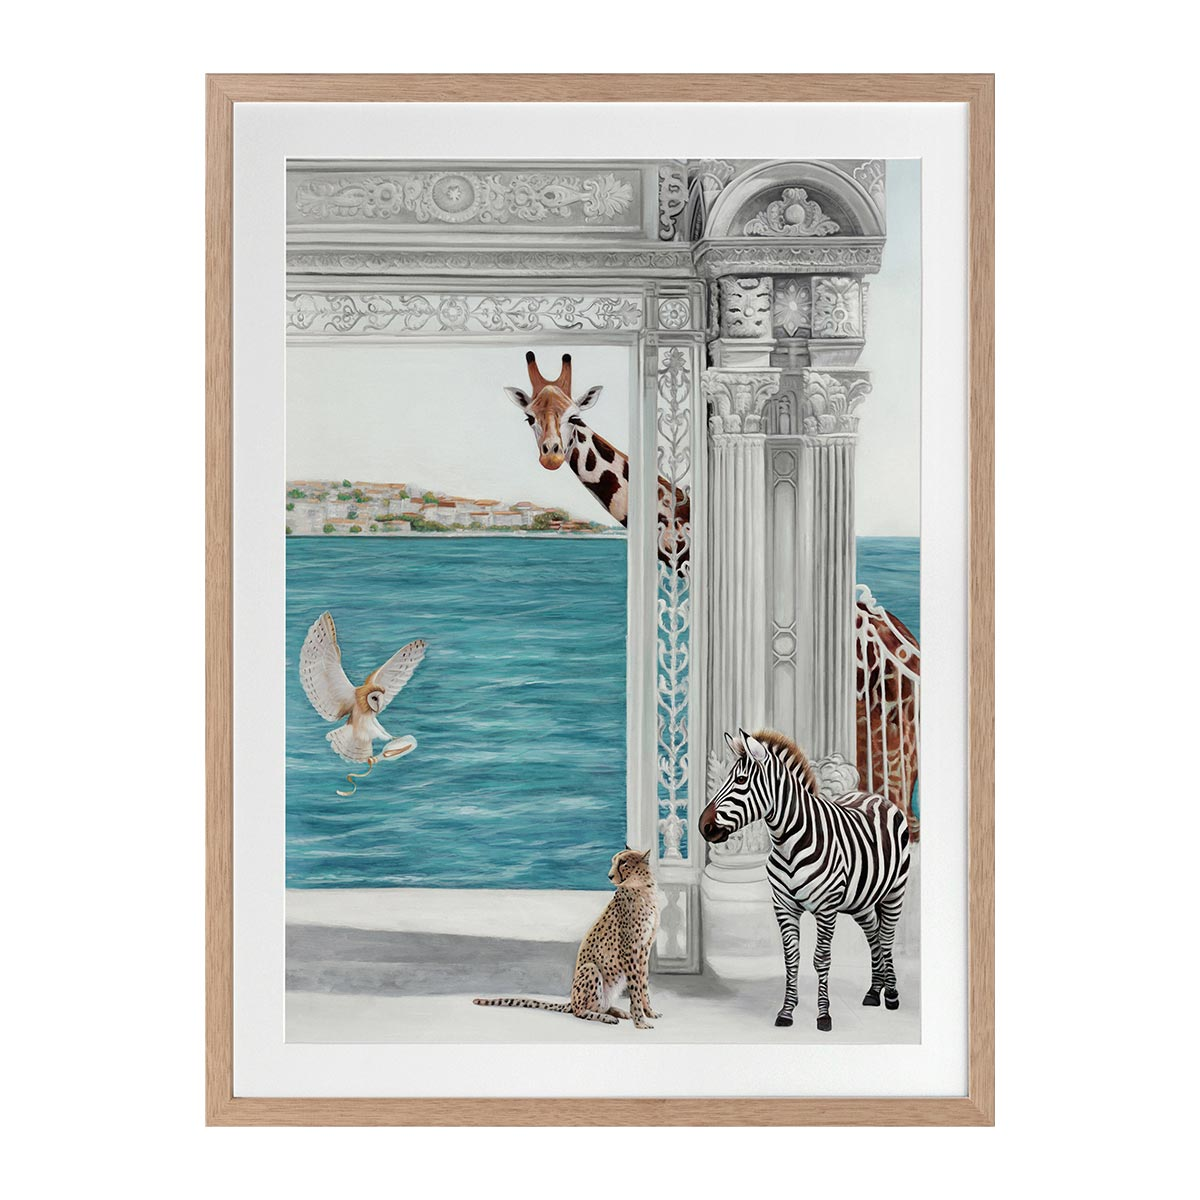 THE MESSAGE FRAMED PRINT in 84 x 105cm